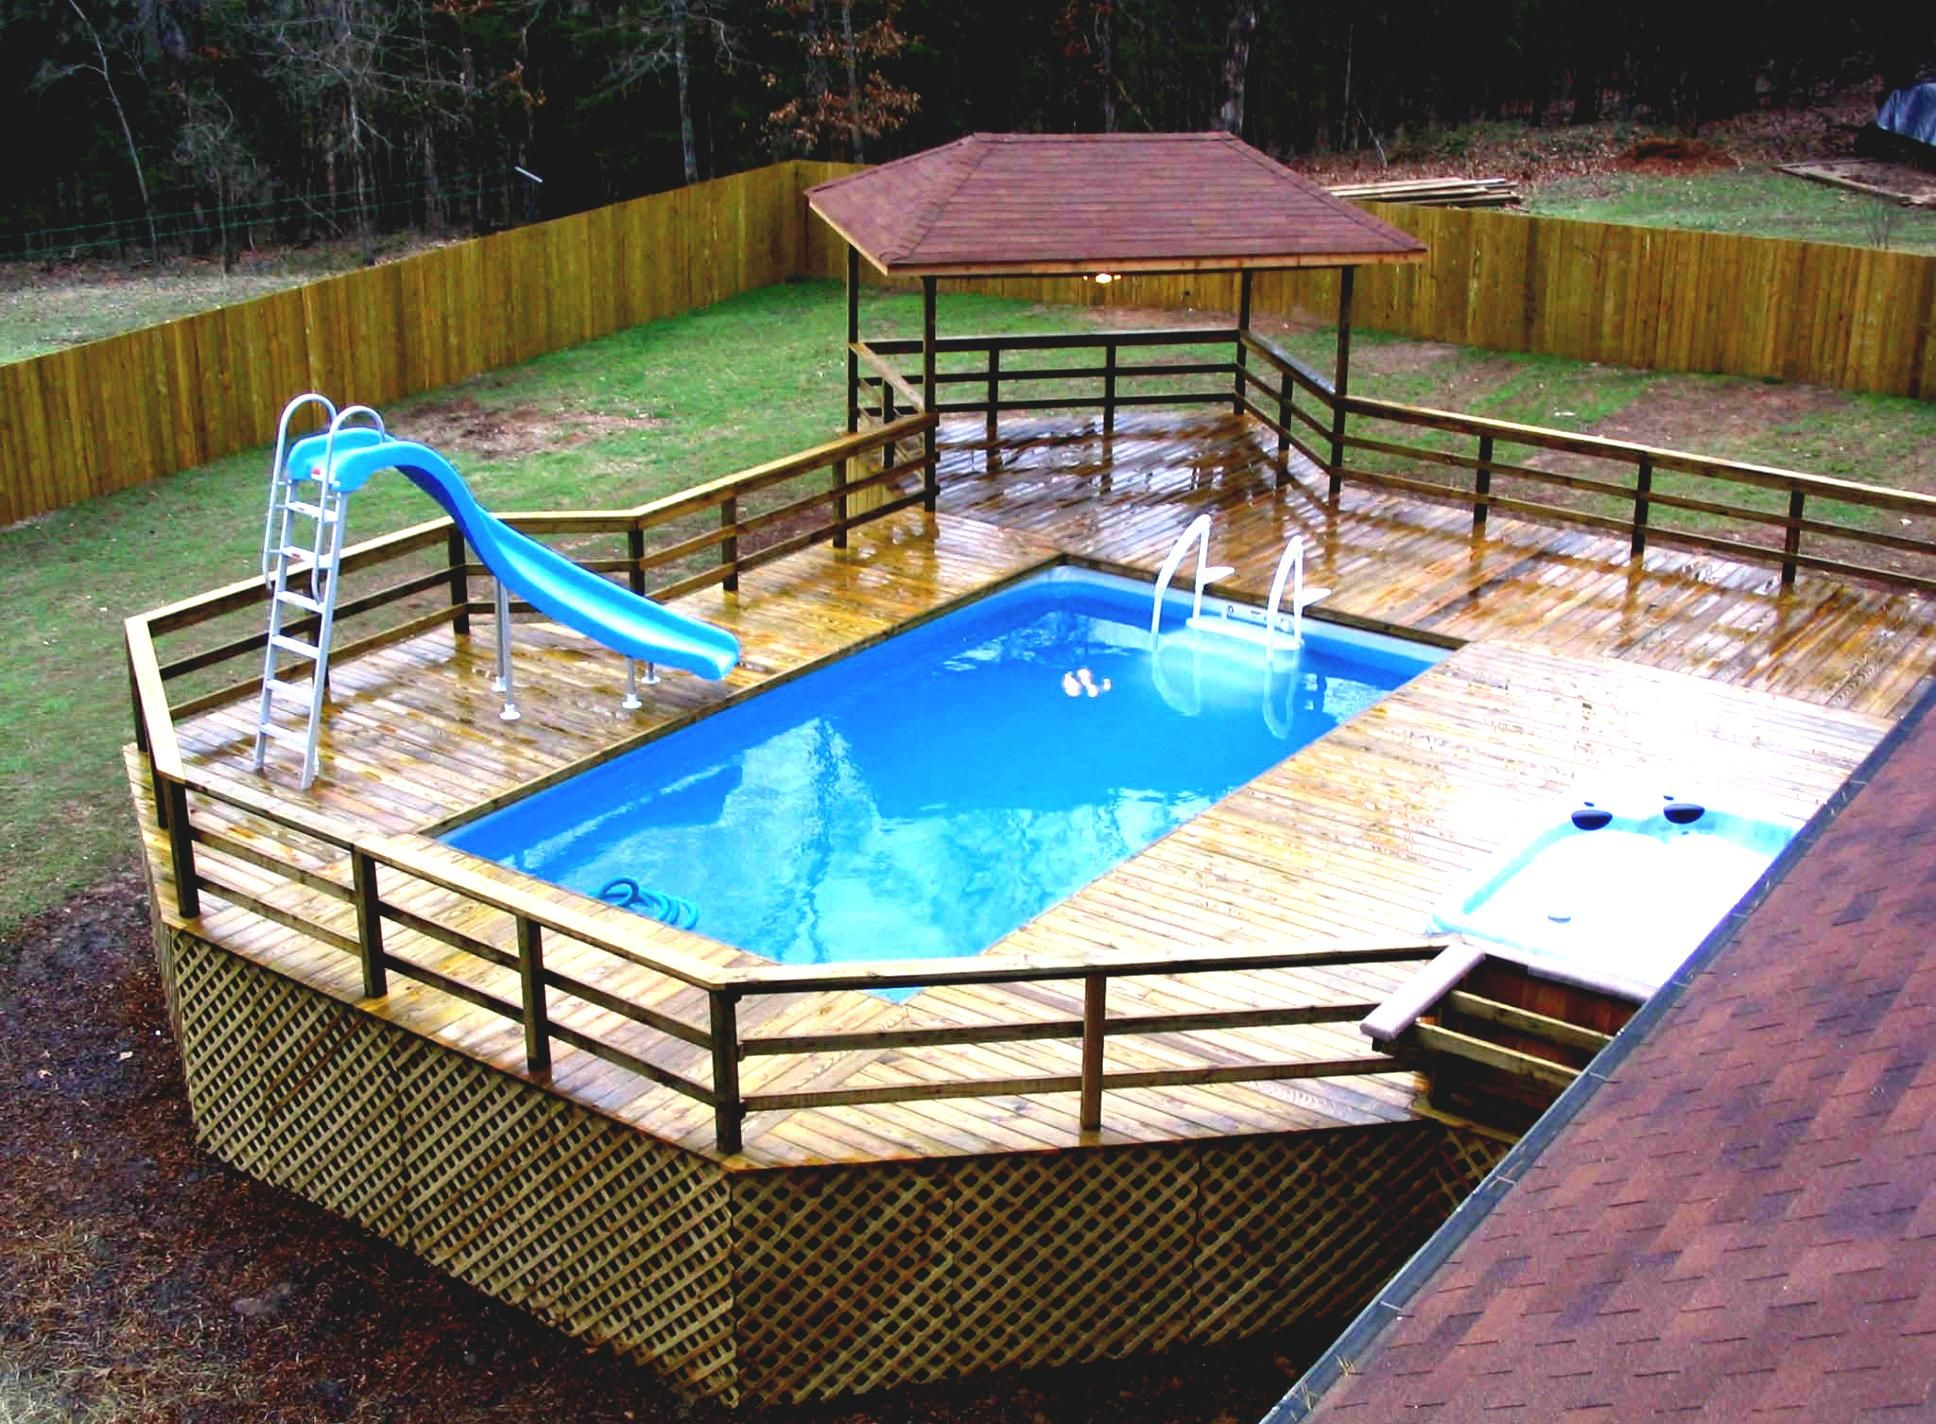 Above Ground Pool Ideas Backyard small backyard pool landscape ideas back yard lap pools 636x421px Intex Above Ground Pool Landscaping Ideas Pdf Backyard With